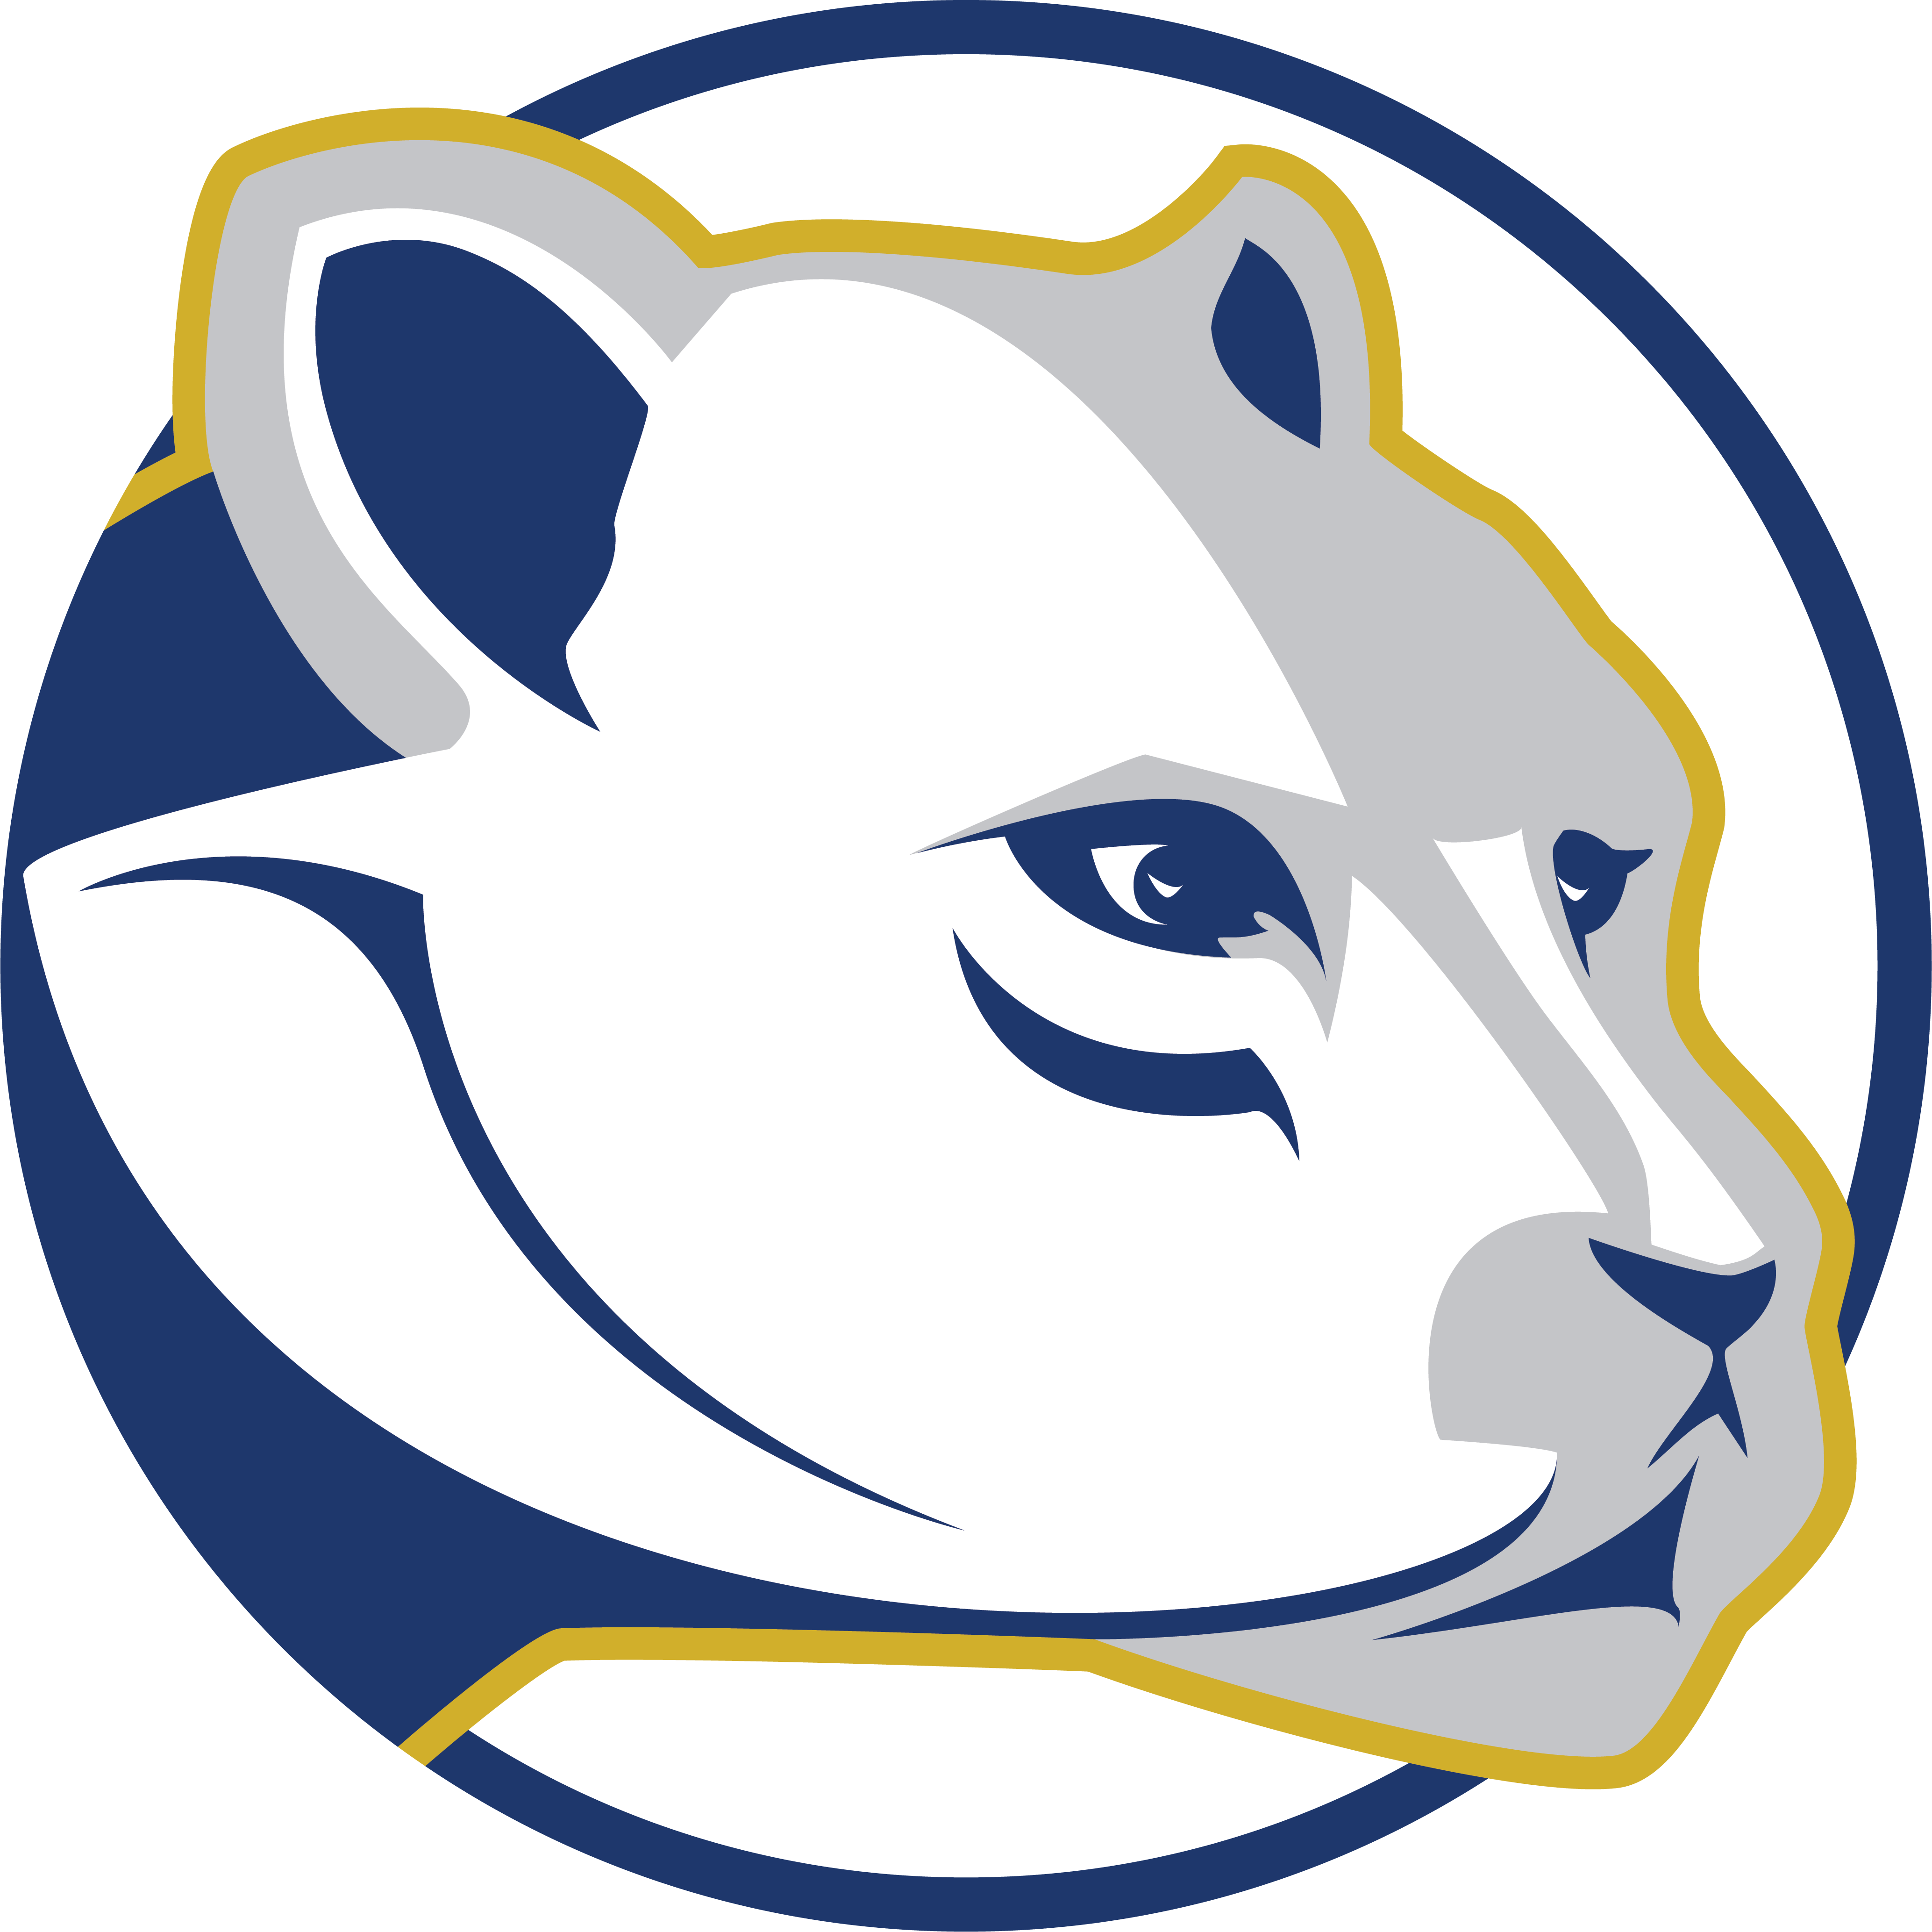 Wildcat school mascot clipart banner freeuse library Alumni Athletes - RYE COUNTRY DAY SCHOOL banner freeuse library